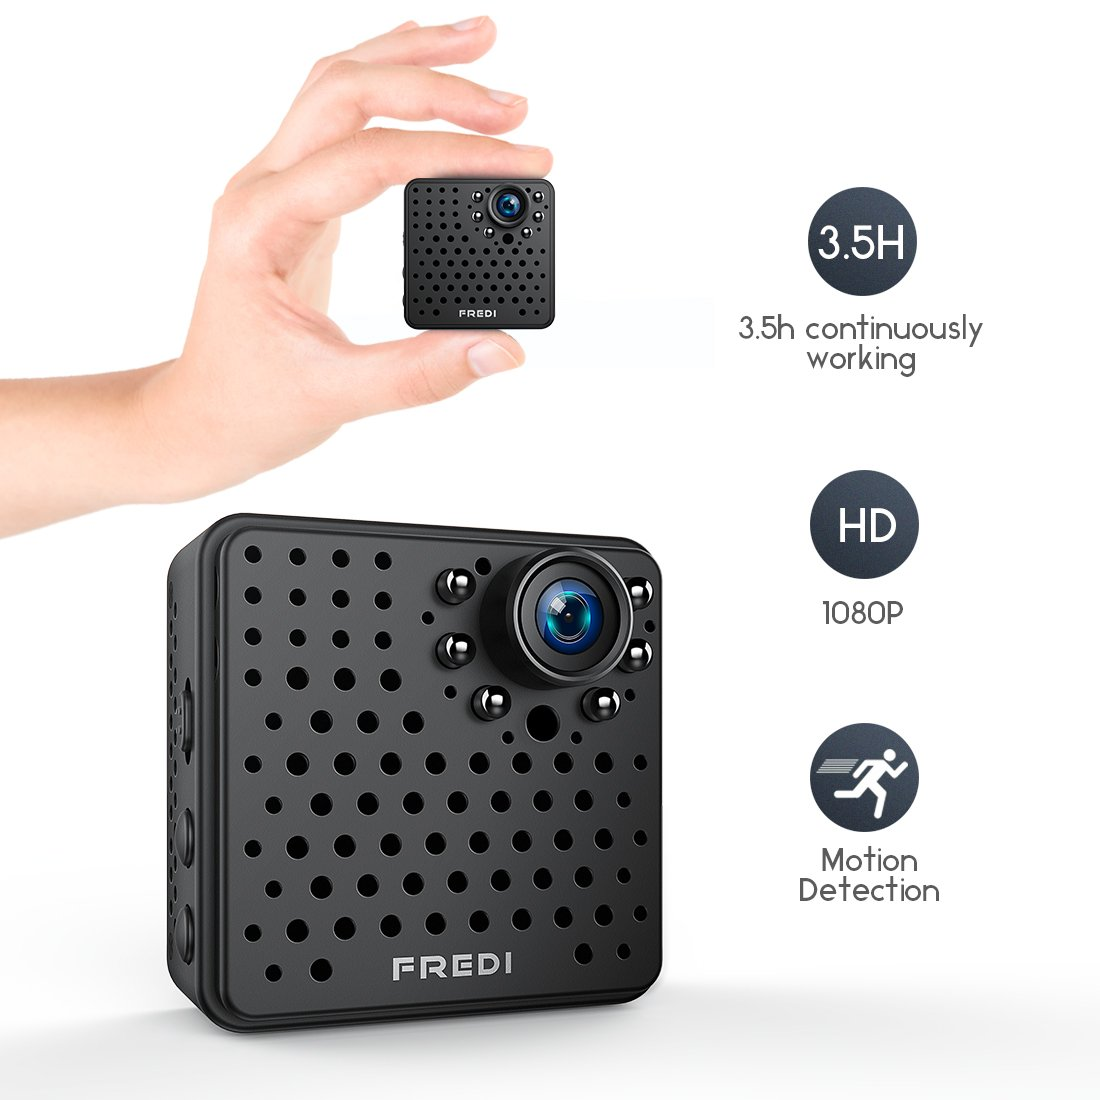 FREDI WiFi Mini Wireless Small 1080p HD Portable Camera with Night  Vision,Motion Detection for iPhone/Android Phone/iPad Remote View(Support  128G SD